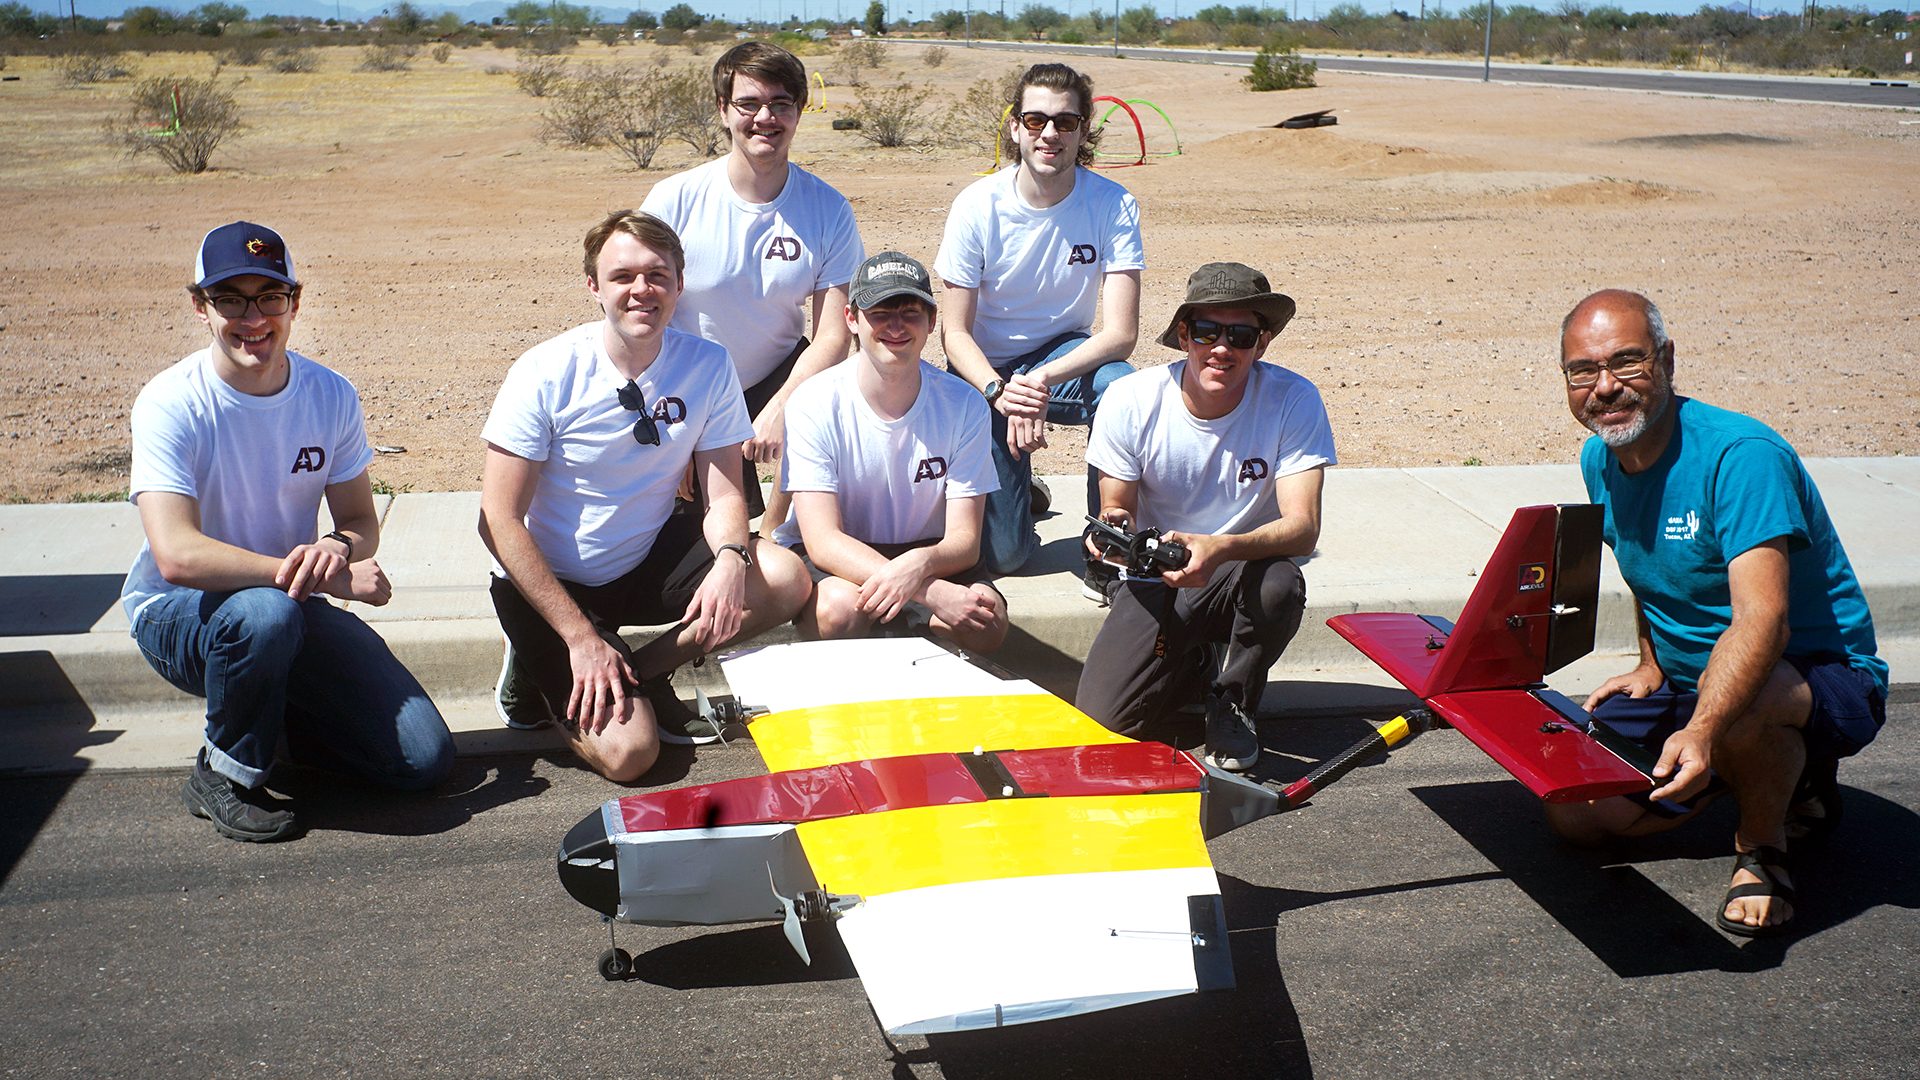 Air Devils team members (left to right): Students Zachary Norris, Max Stauffer, Daniel Kosednar, Kevin O'Brian, Jack Griffin, Evan Draganchuk and Professor of Practice Timothy Takashi.